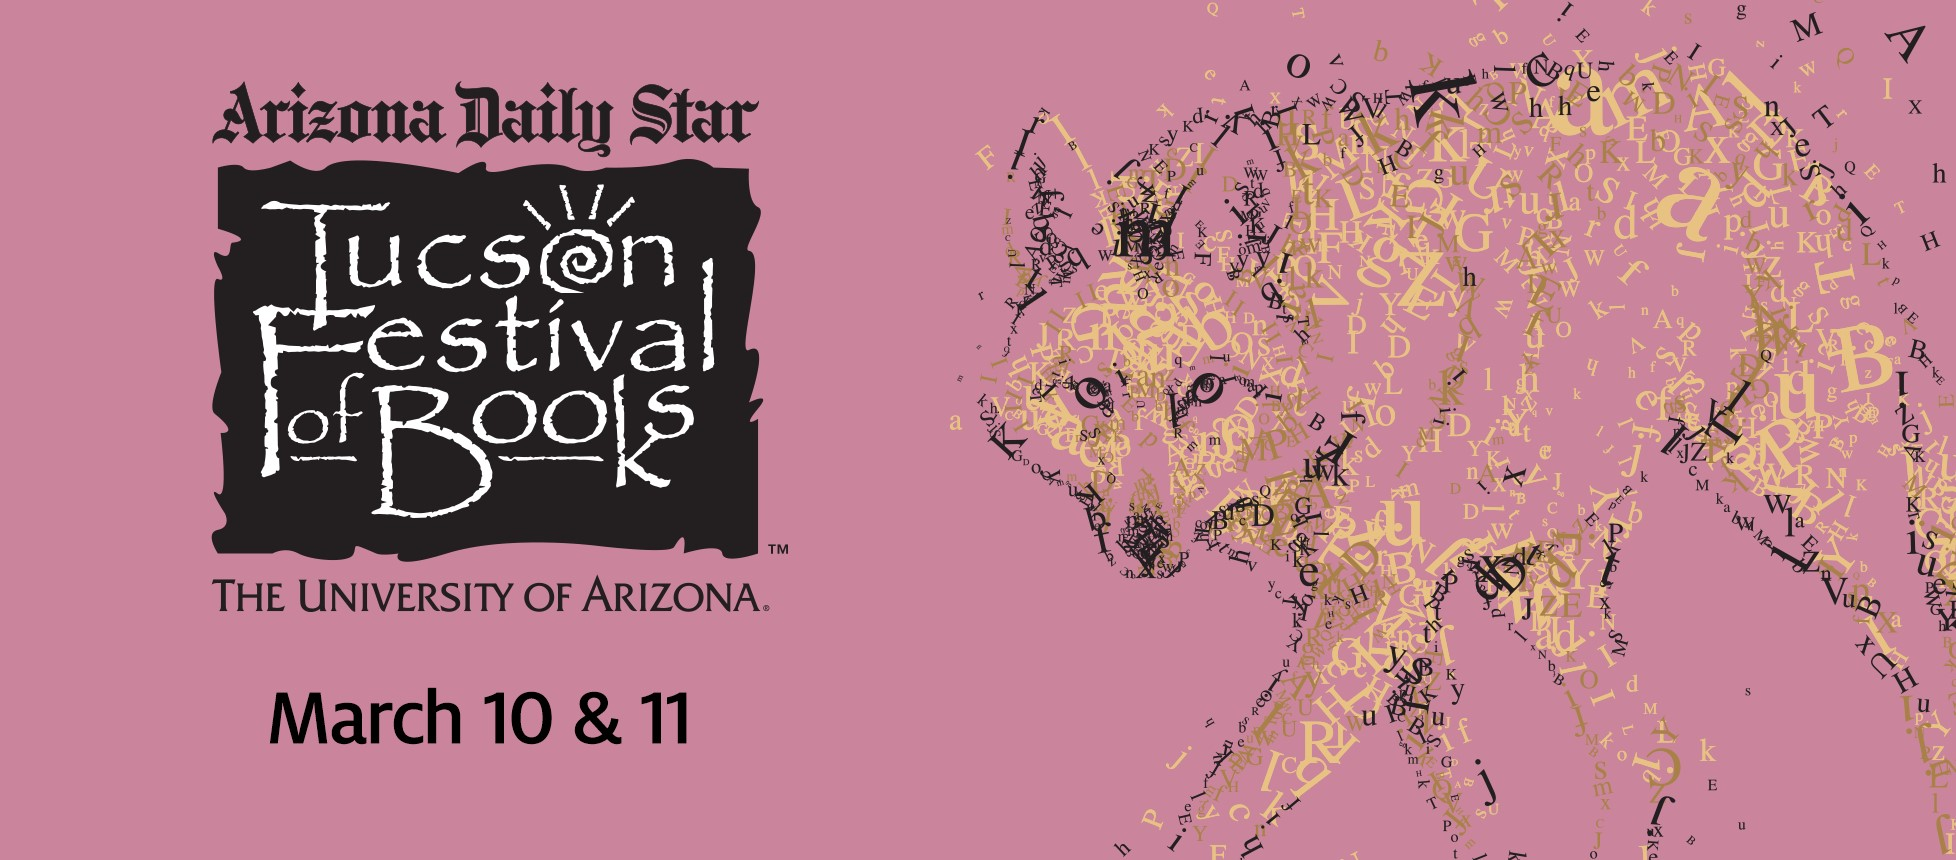 Tucson Festival of Books | March 10 & 11